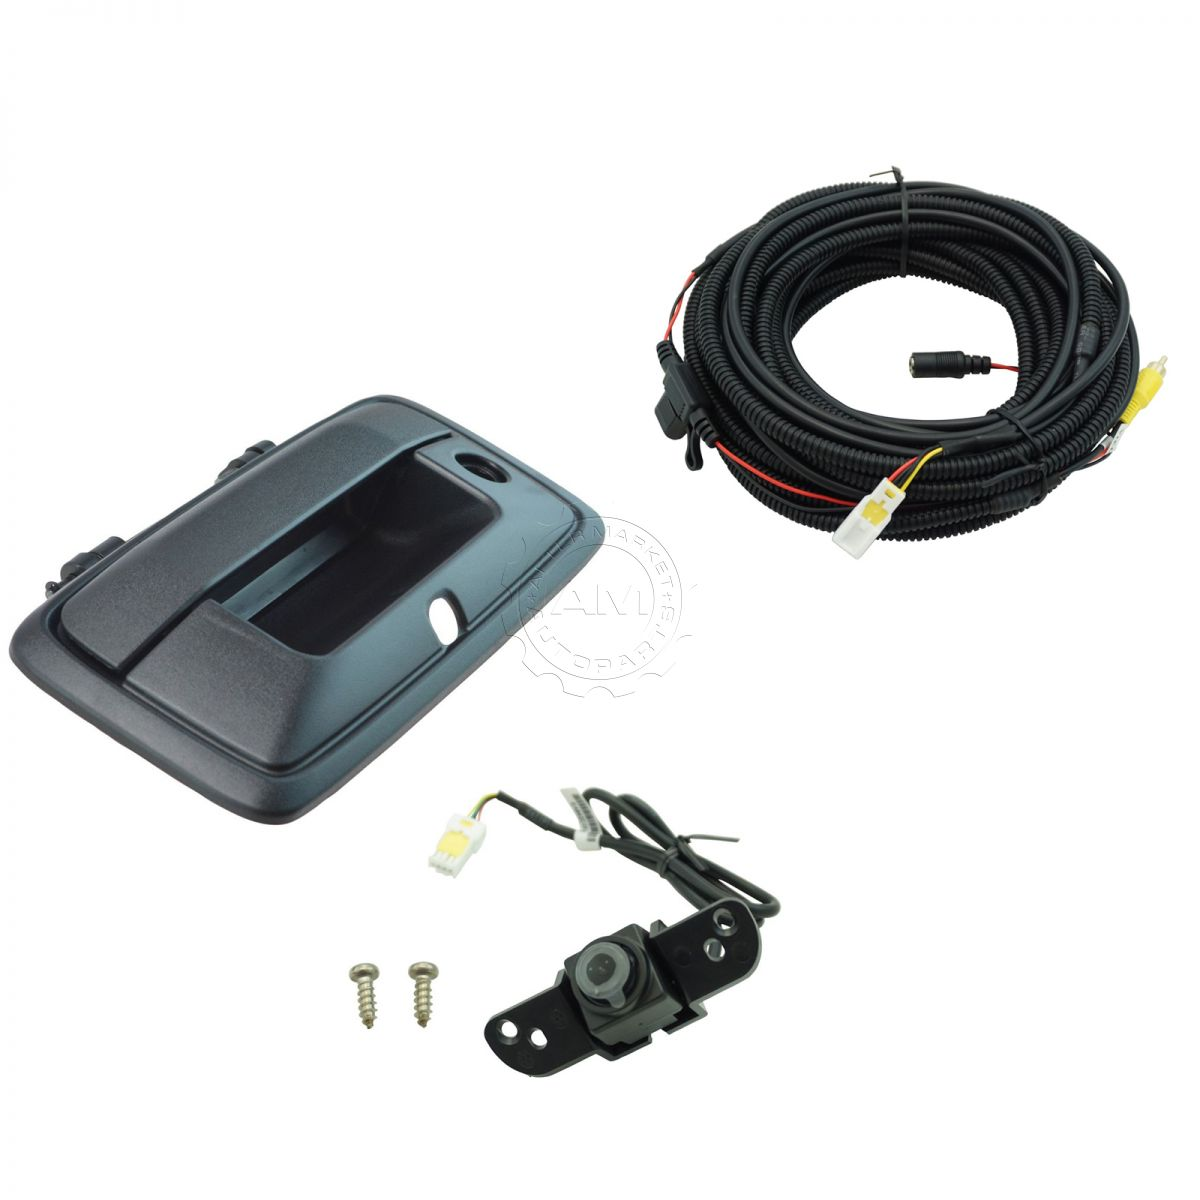 Rear View Camera Add On Kit w/ Wiring Harness & Tailgate Handle for GM  Pickup